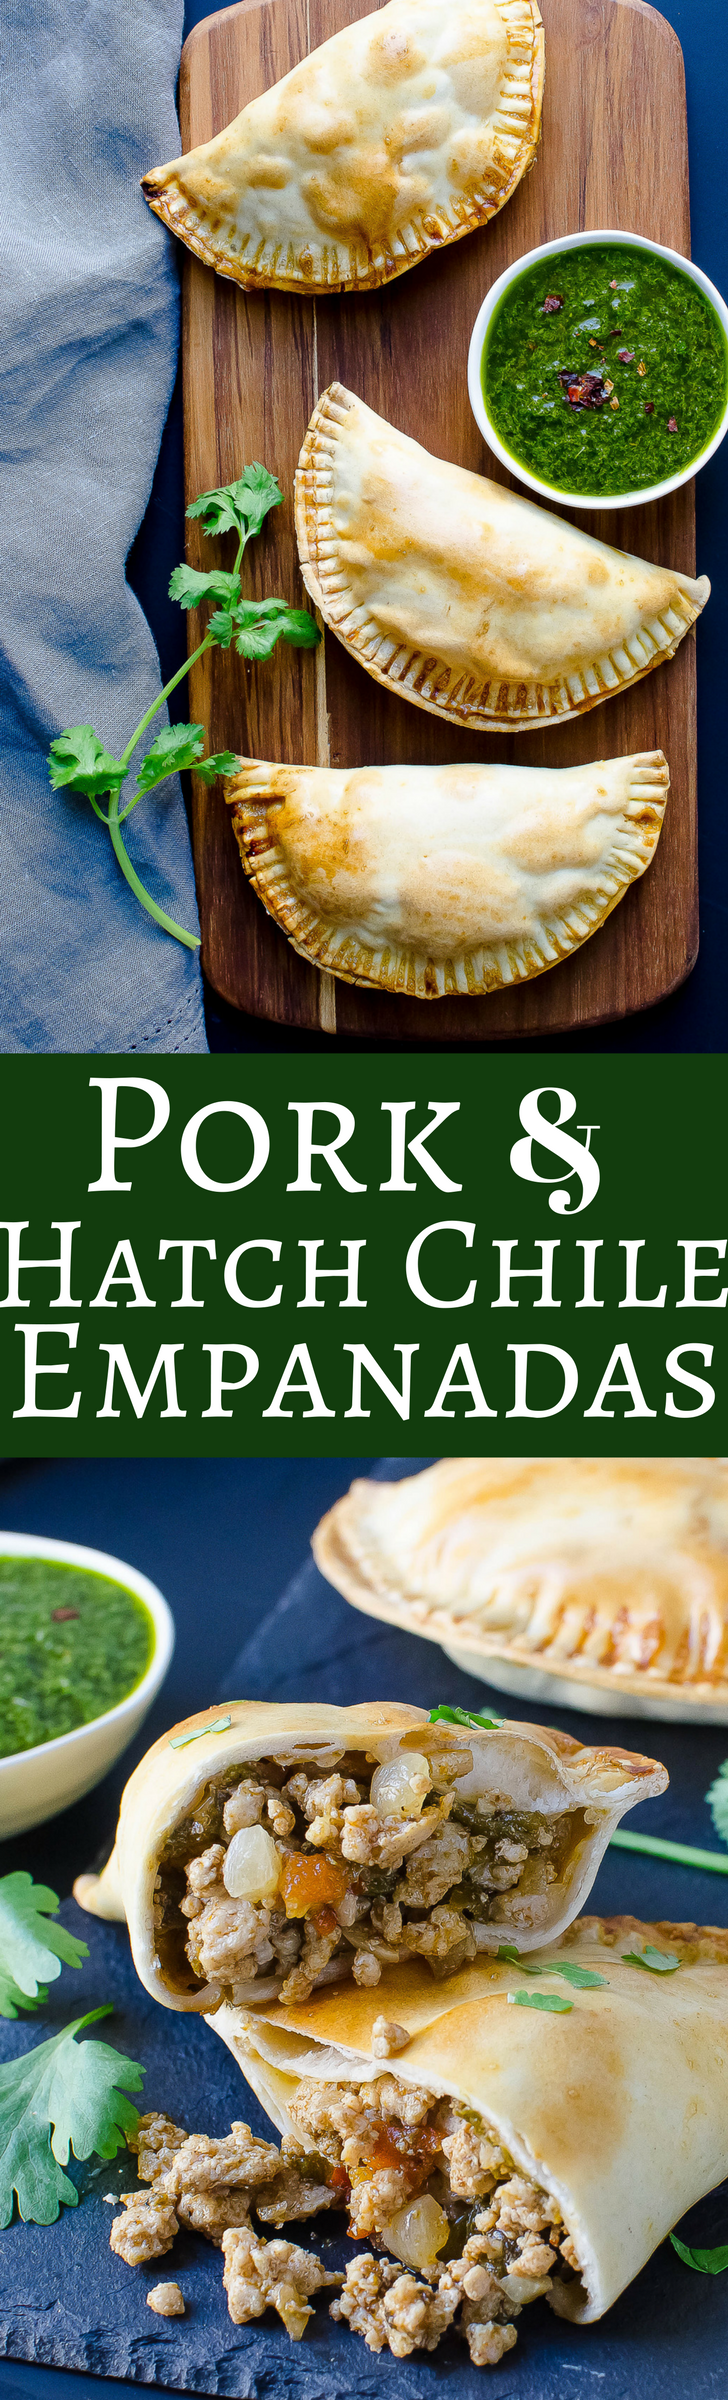 Spiced, savory pork empanadas with a kick of fire roasted hatch chiles and a fresh herb sauce - HEAVEN!